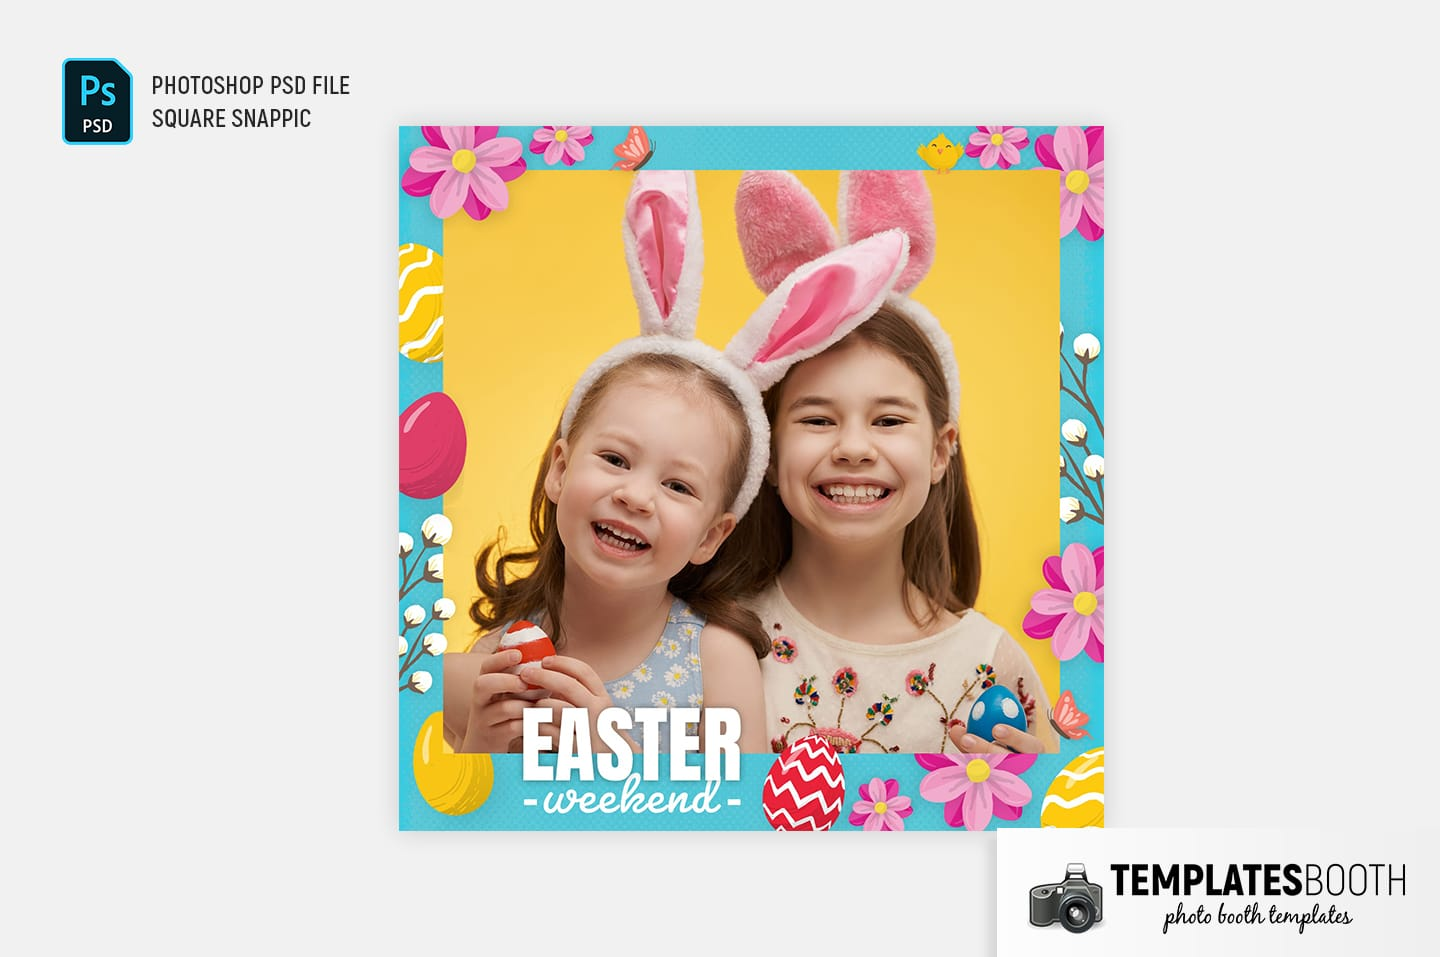 Easter Photo Booth Template (Snappic)